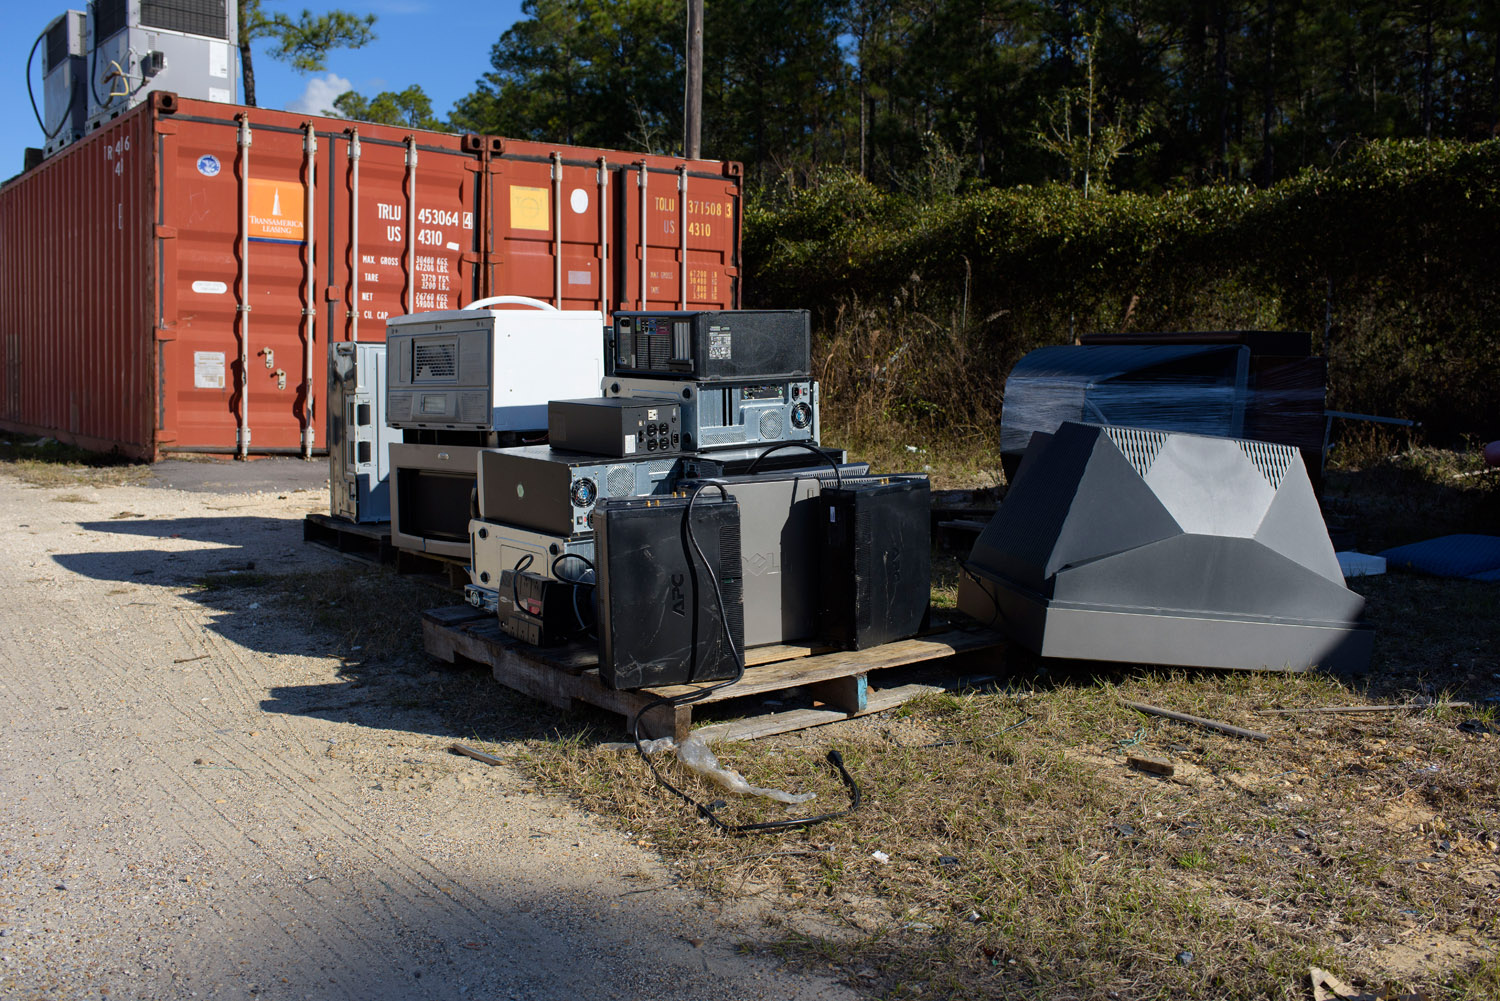 In front of a railroad car on the sand, an overturned tube television, right, shines beside a pallet loaded with old VCRs, CPUs, and microwaves.